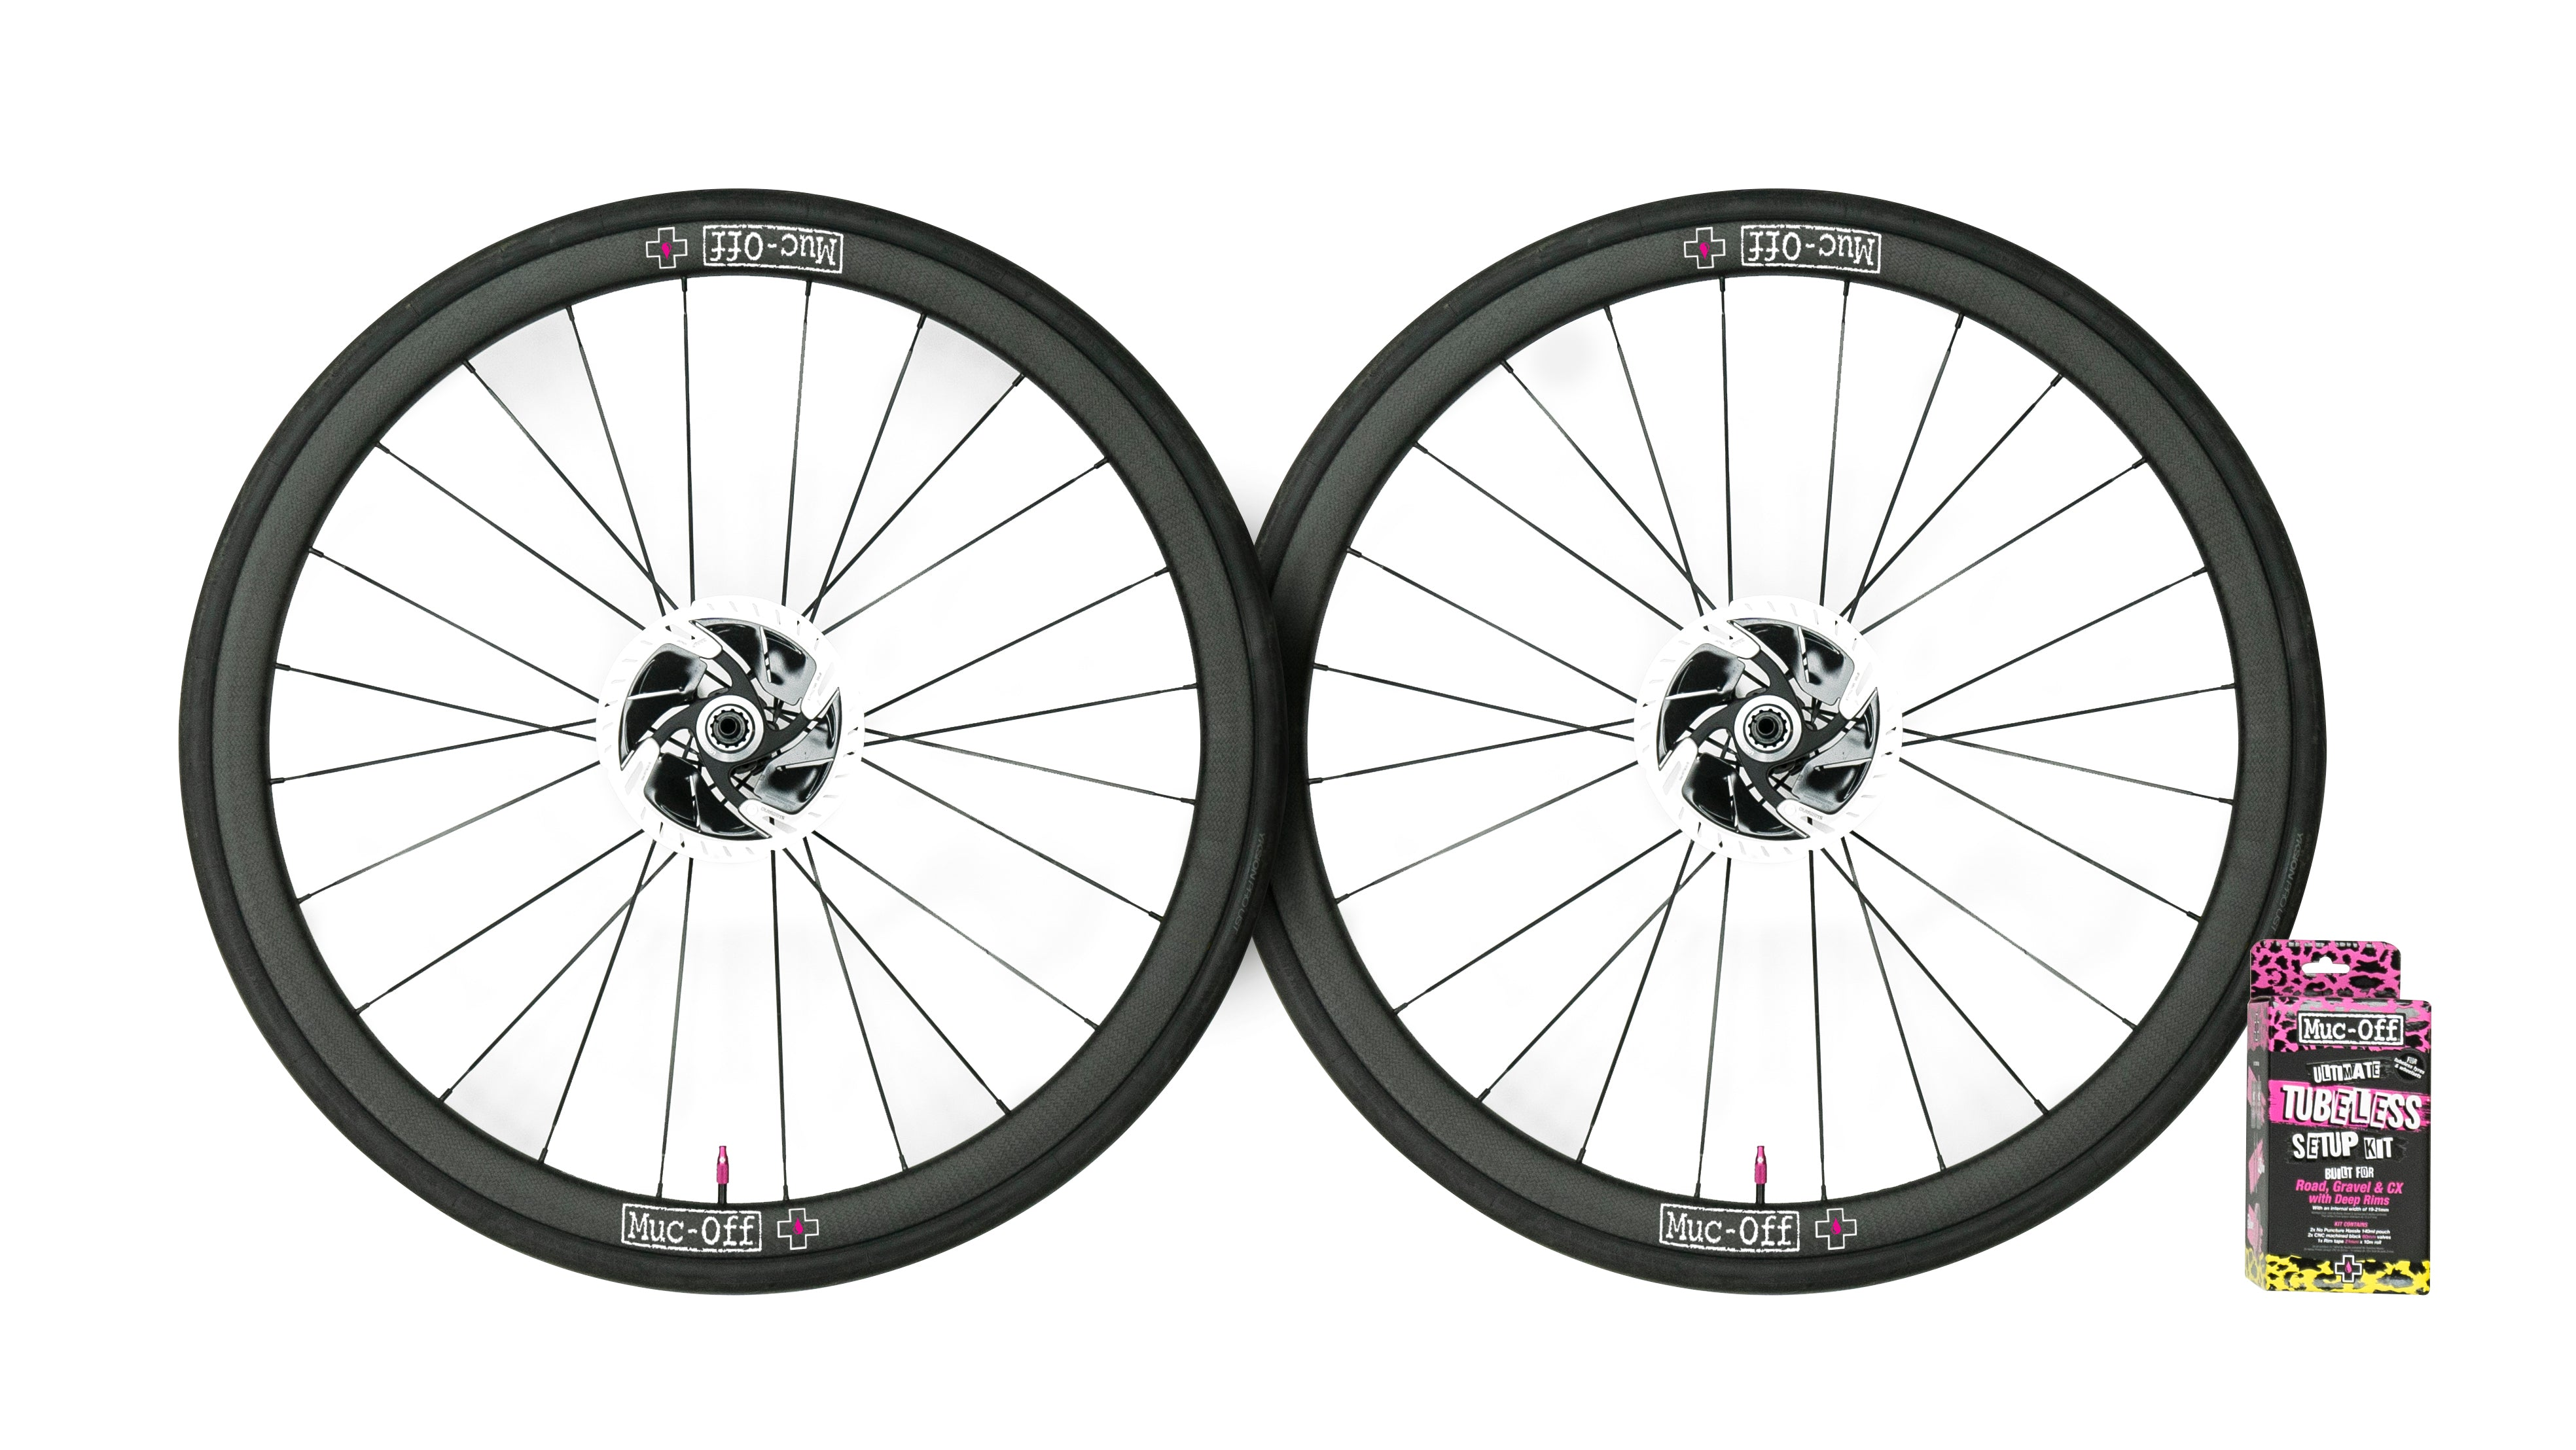 Muc-Off Tubeless Road Wheel set